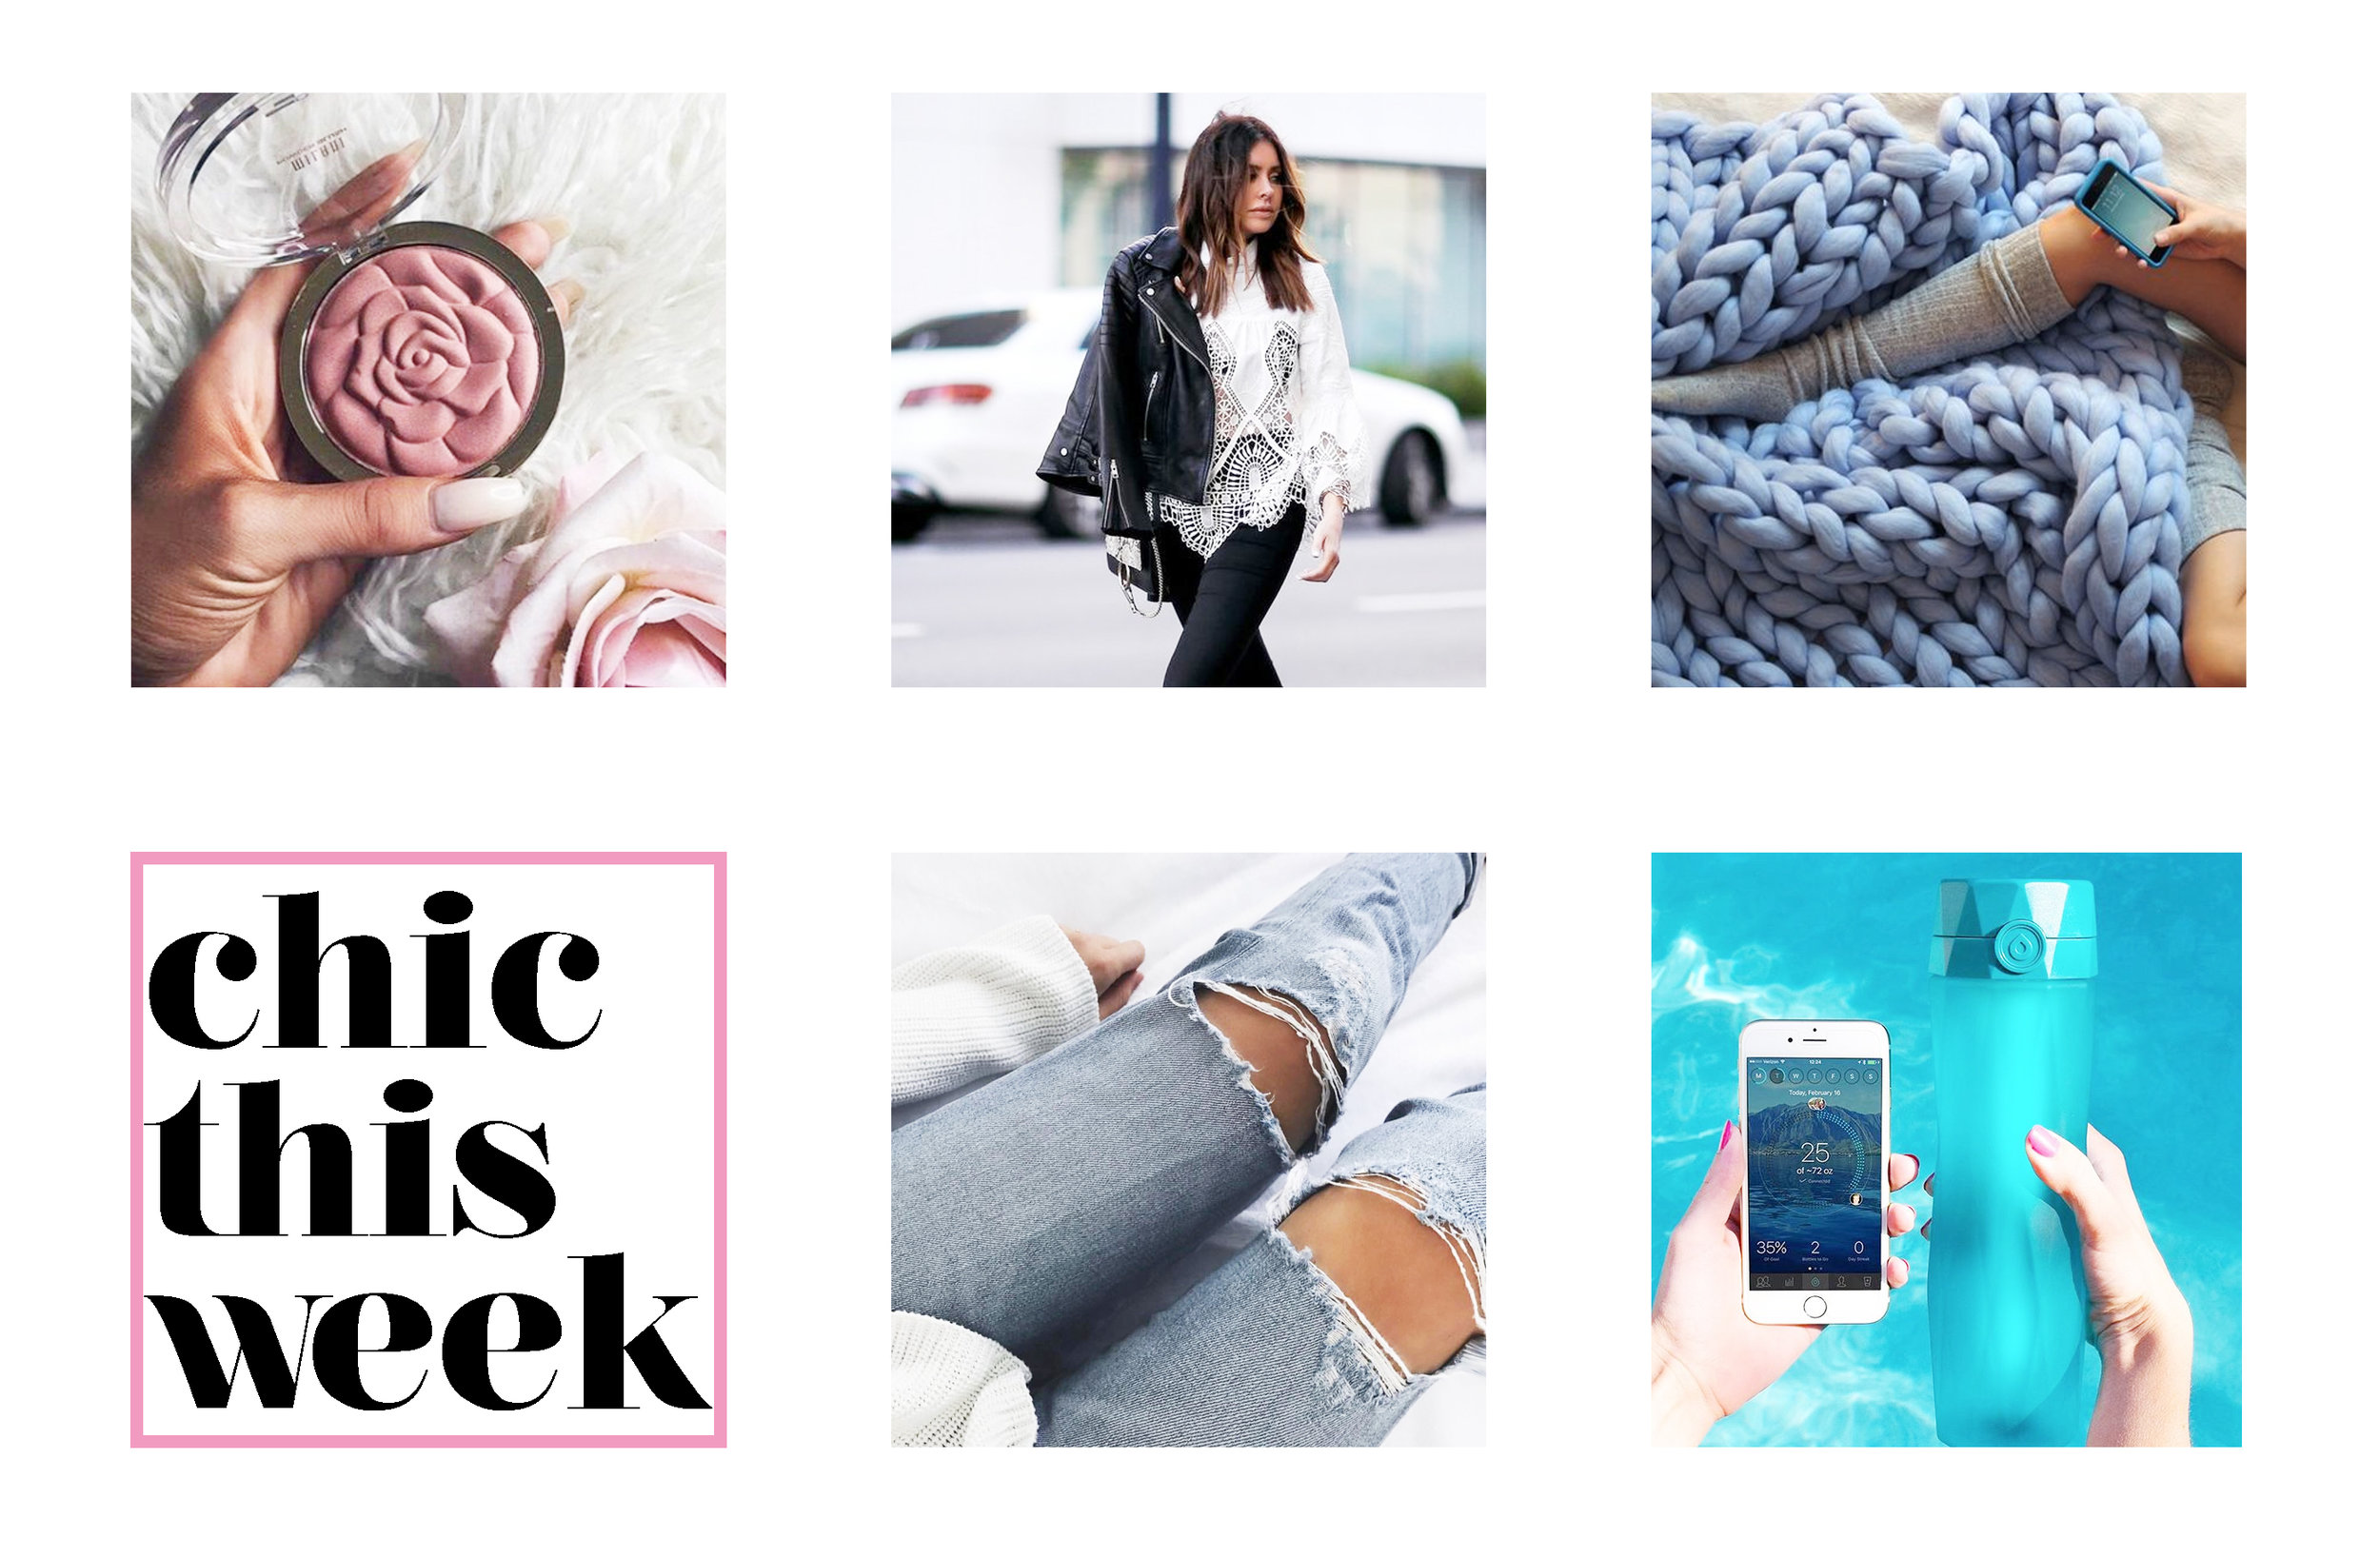 Your weekly dose of new chic finds (via Chic Now)